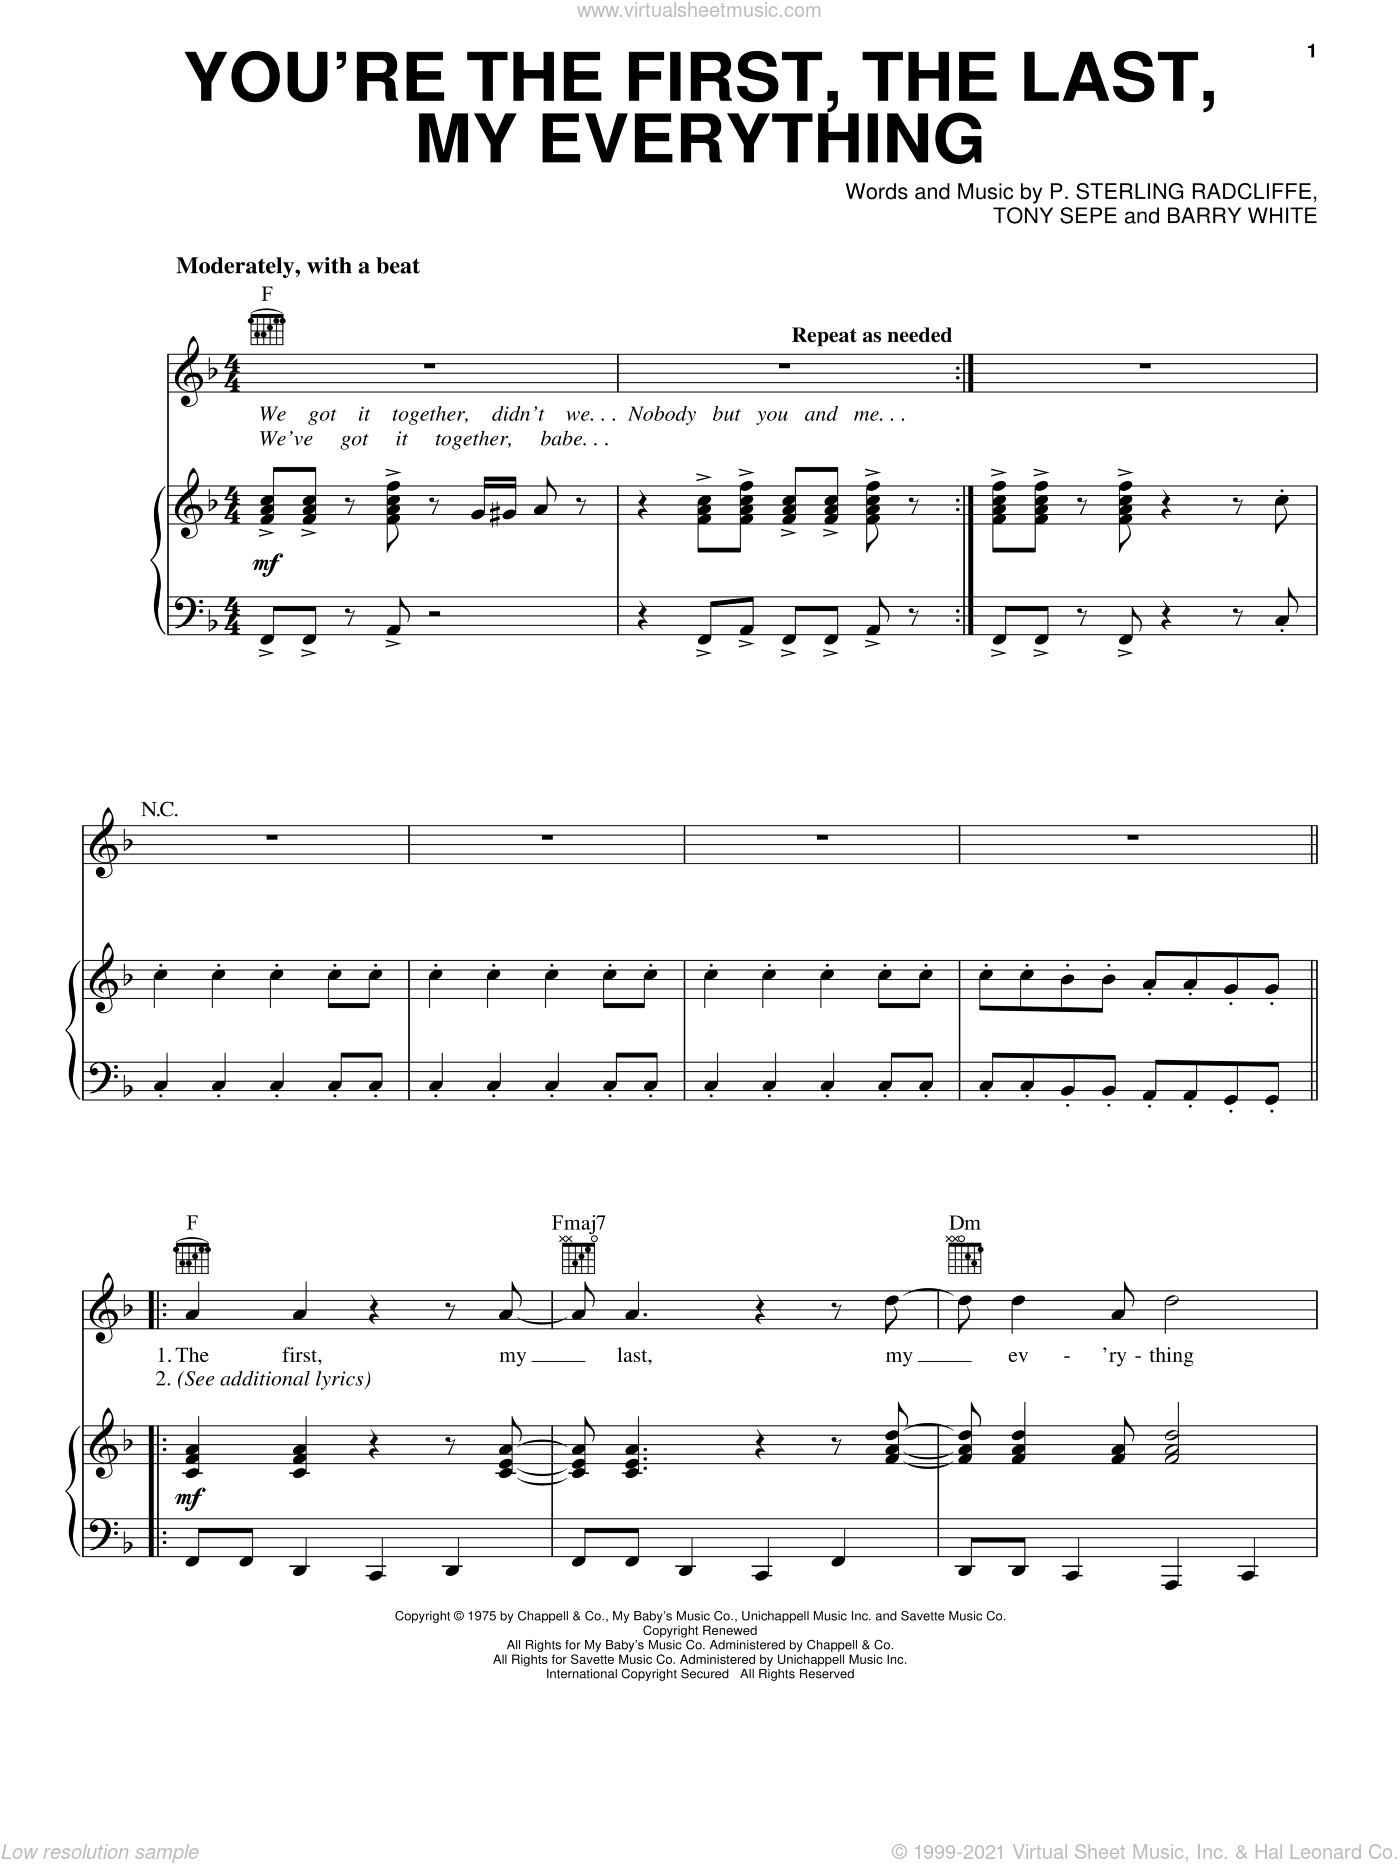 You're The First, The Last, My Everything sheet music for voice, piano or guitar by Barry White, P. Sterling Radcliffe and Tony Sepe, intermediate